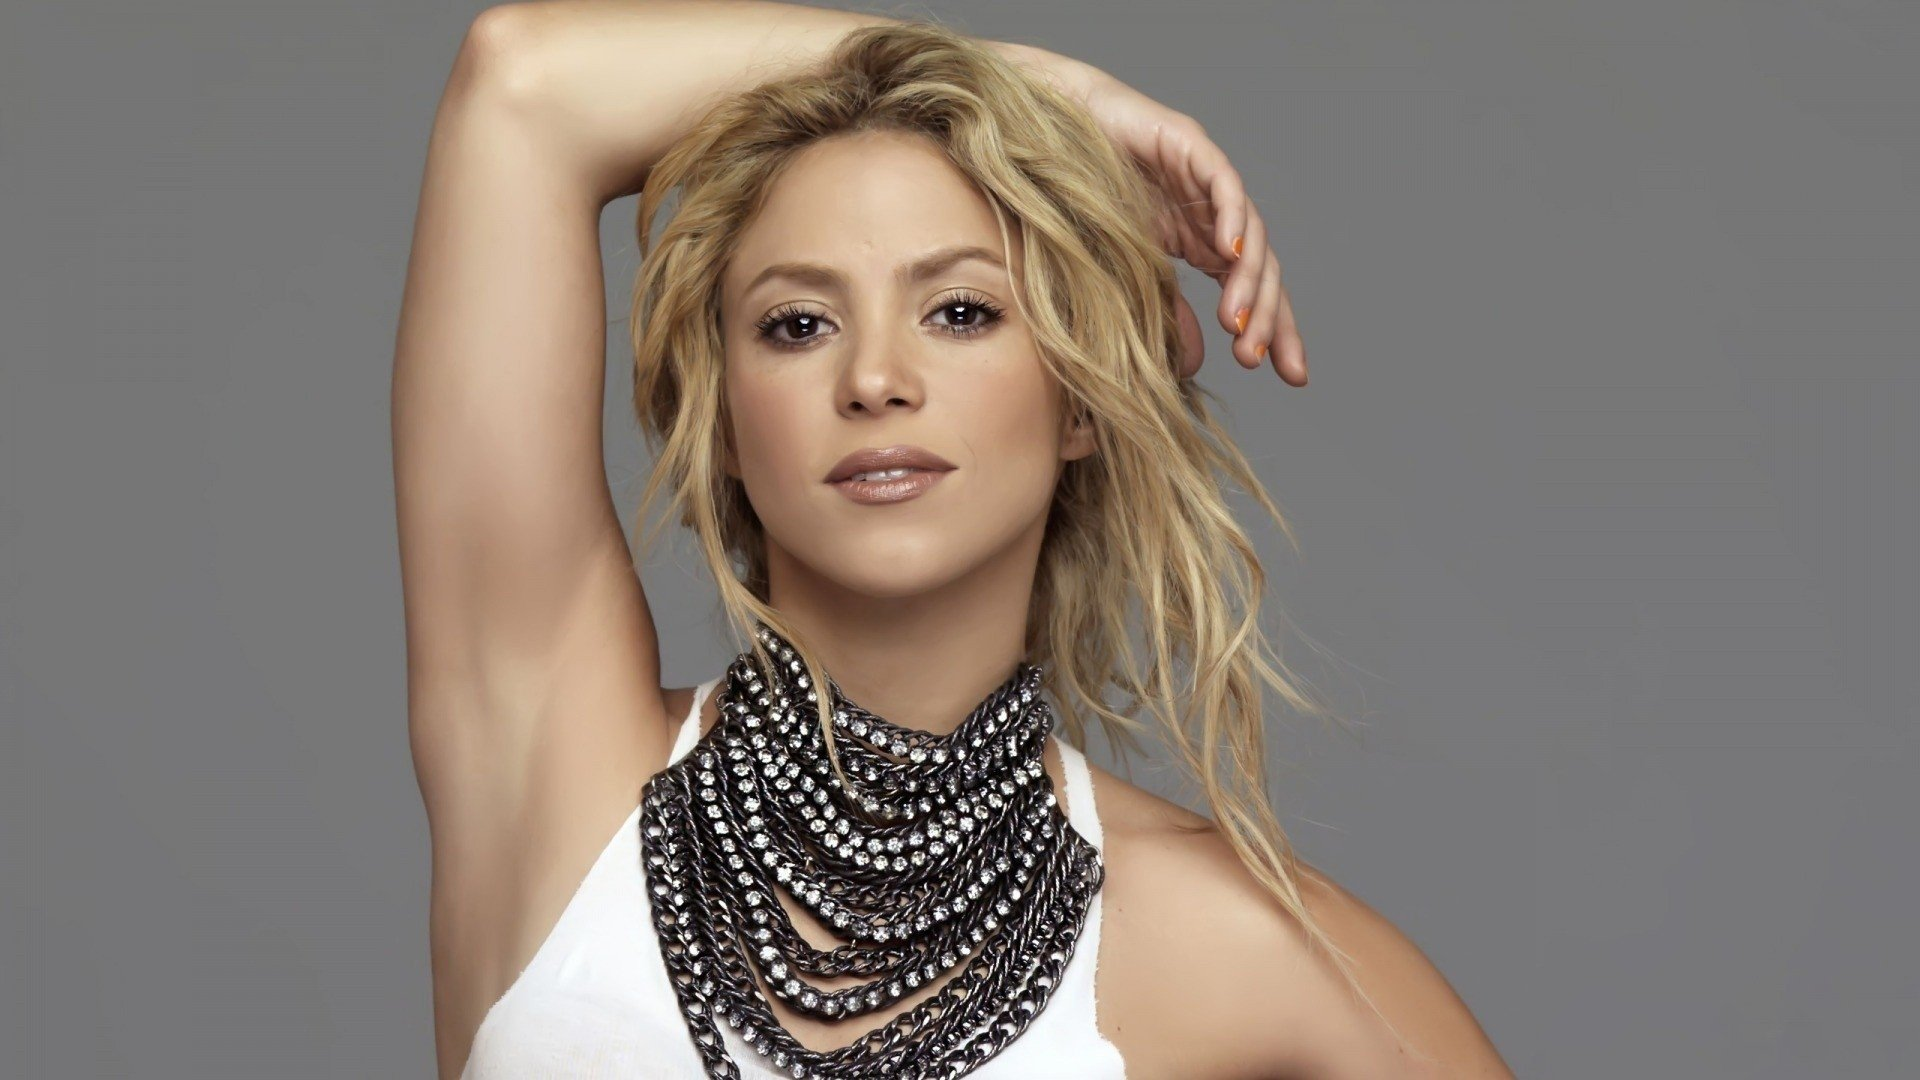 Colombia is home to two well-known Colombian musicians are Shakira and Juanes.